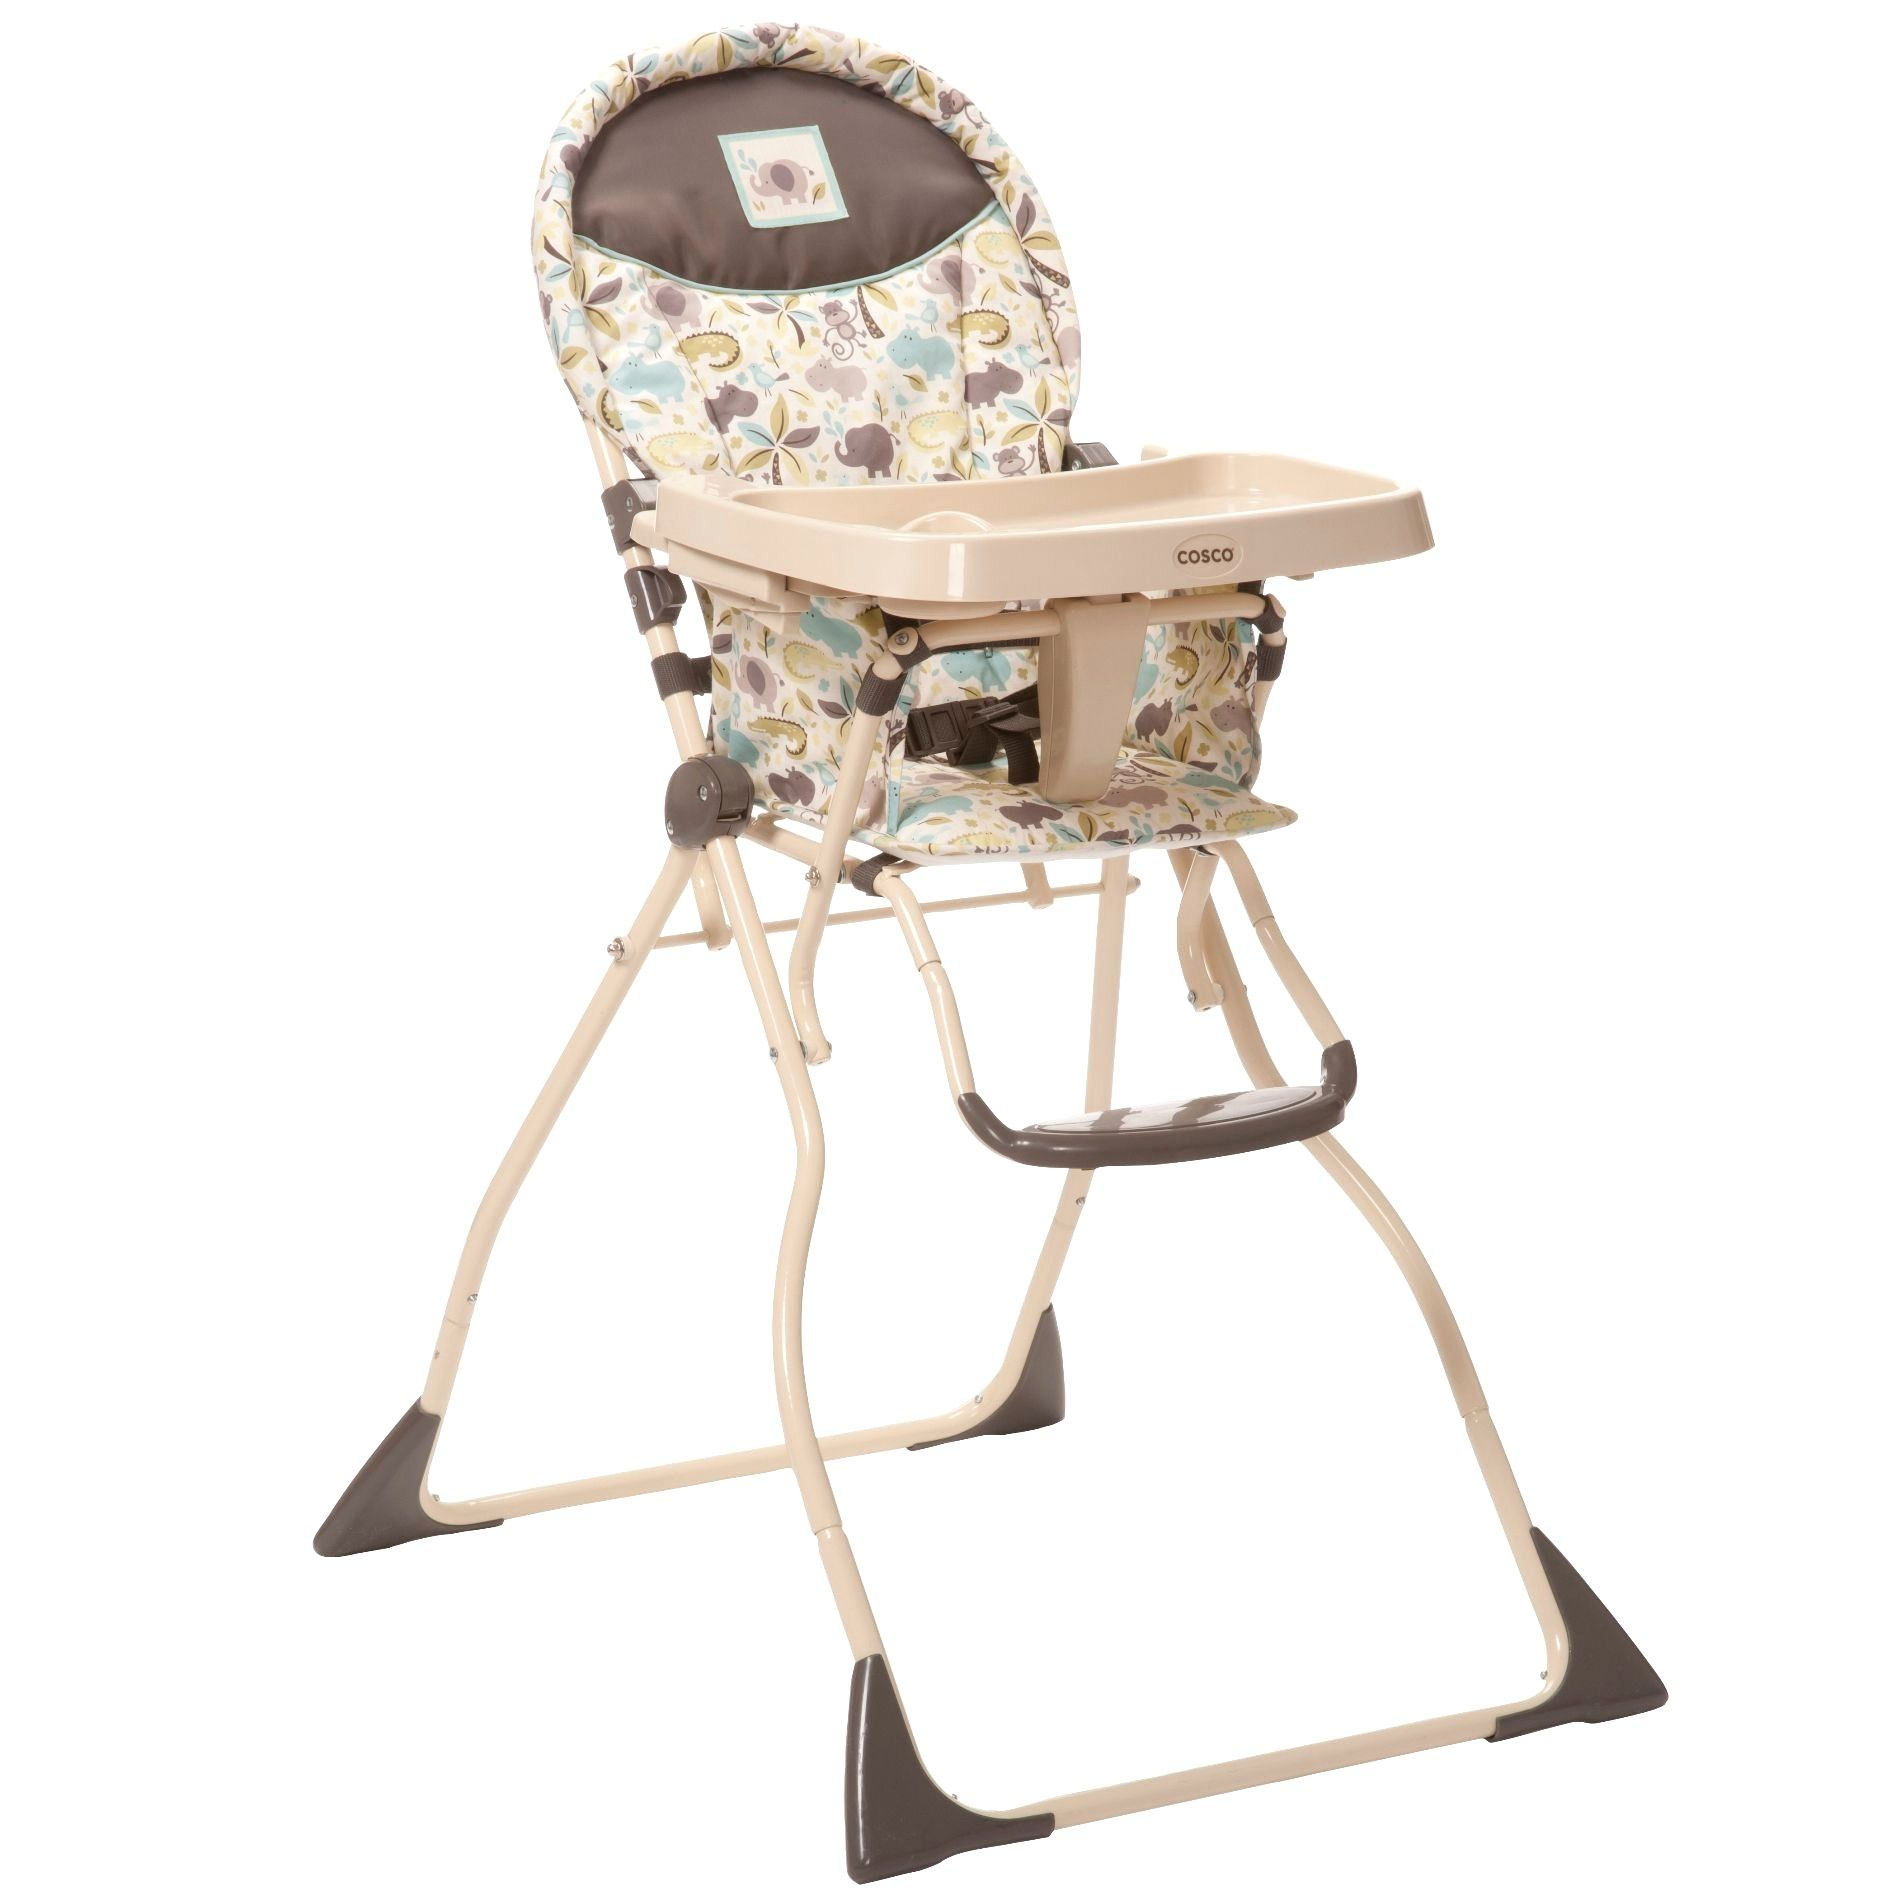 Cosco Metal Folding High Chair